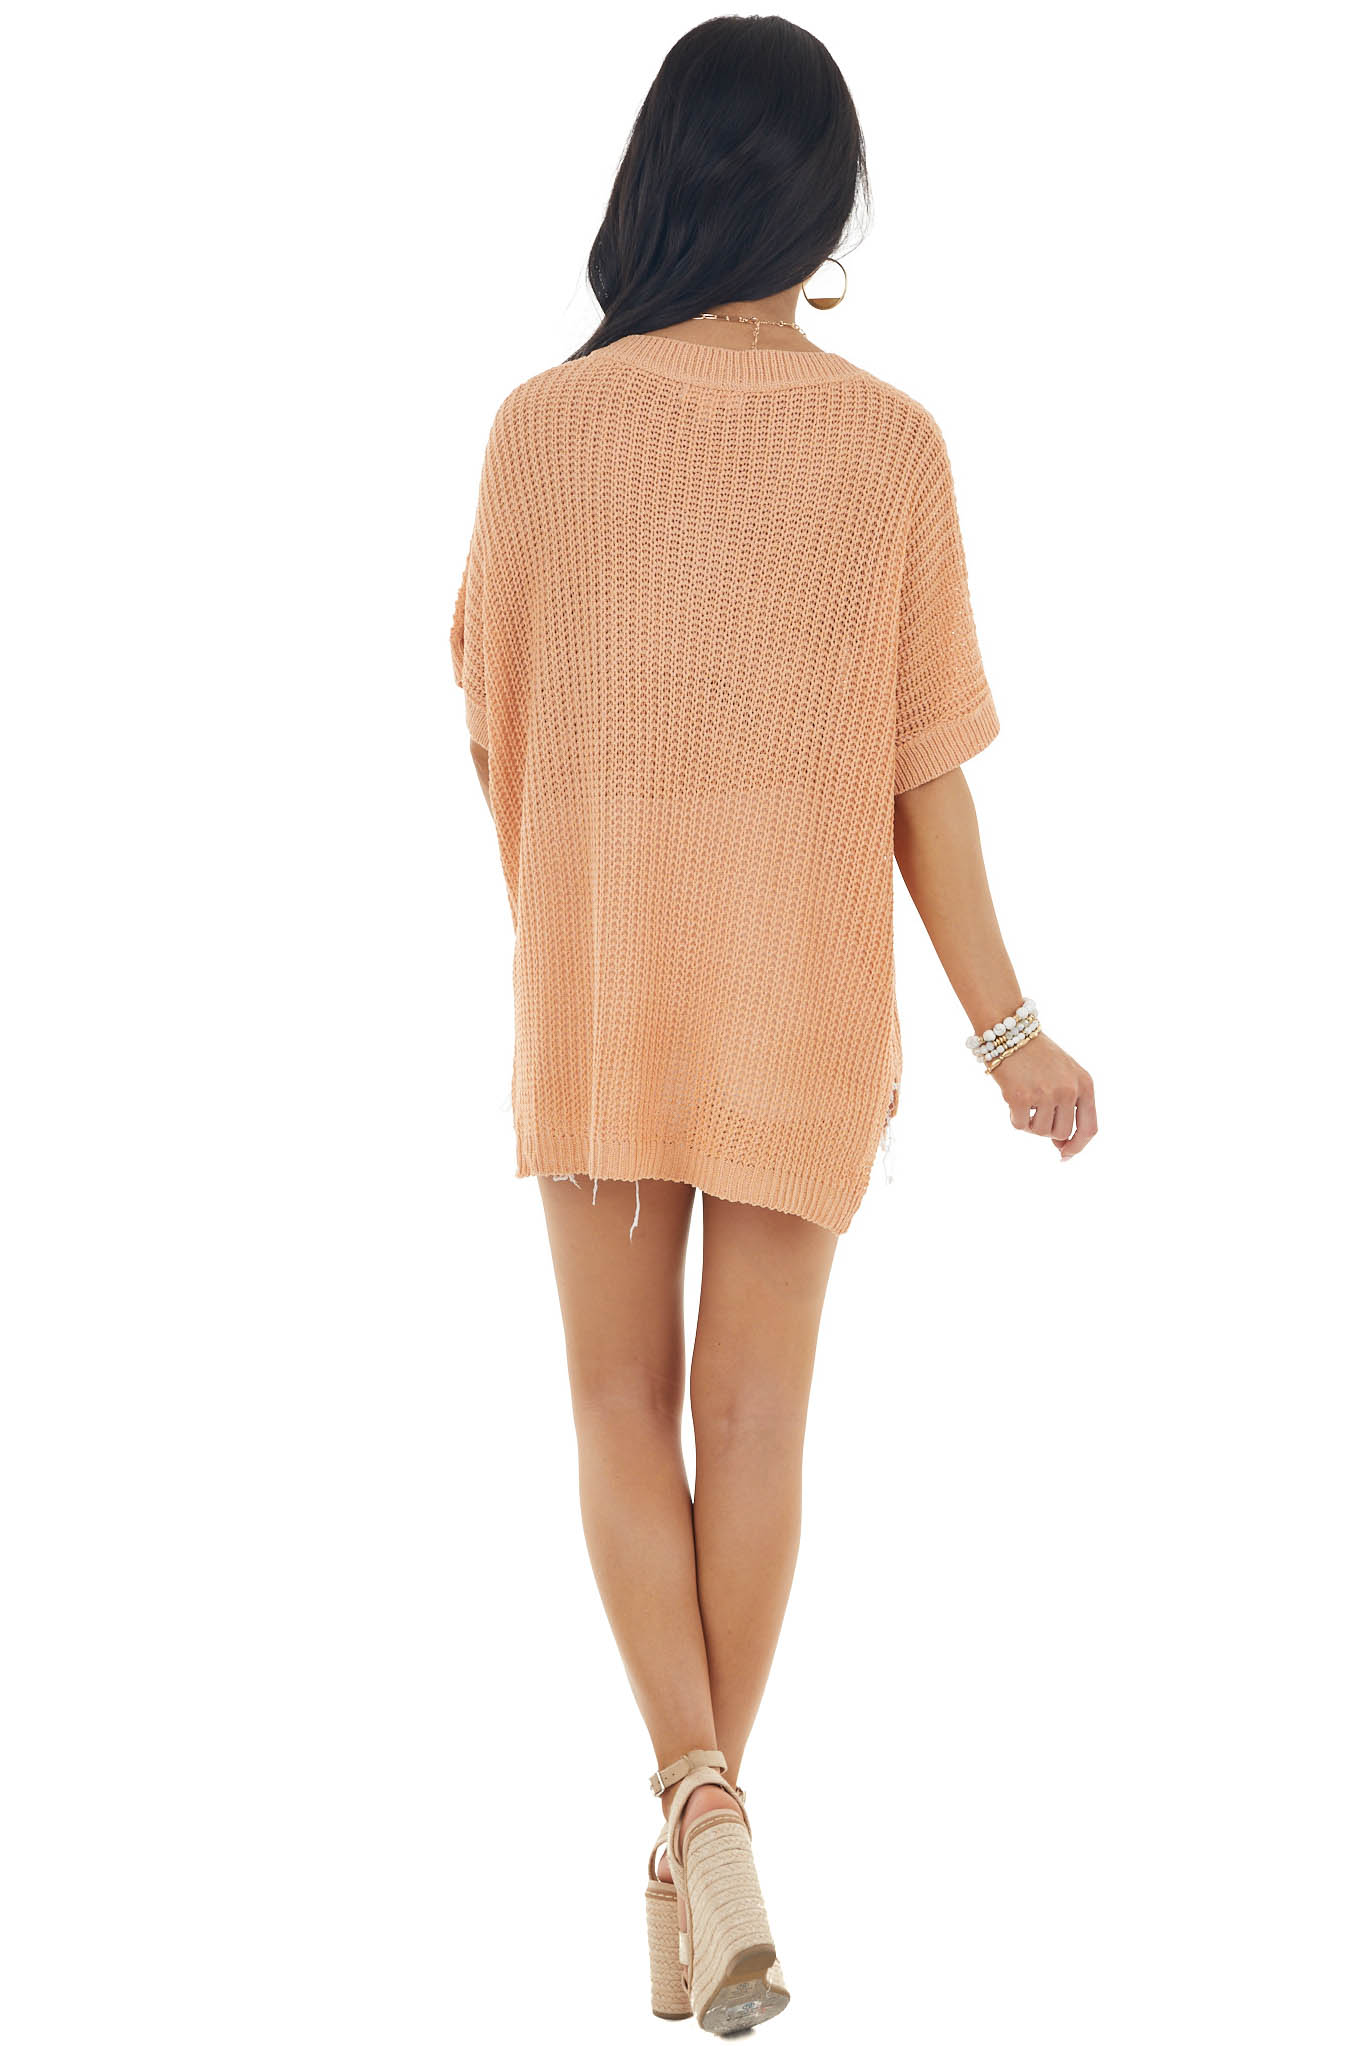 Melon Short Sleeve Loose Knit Sweater with Front Pocket